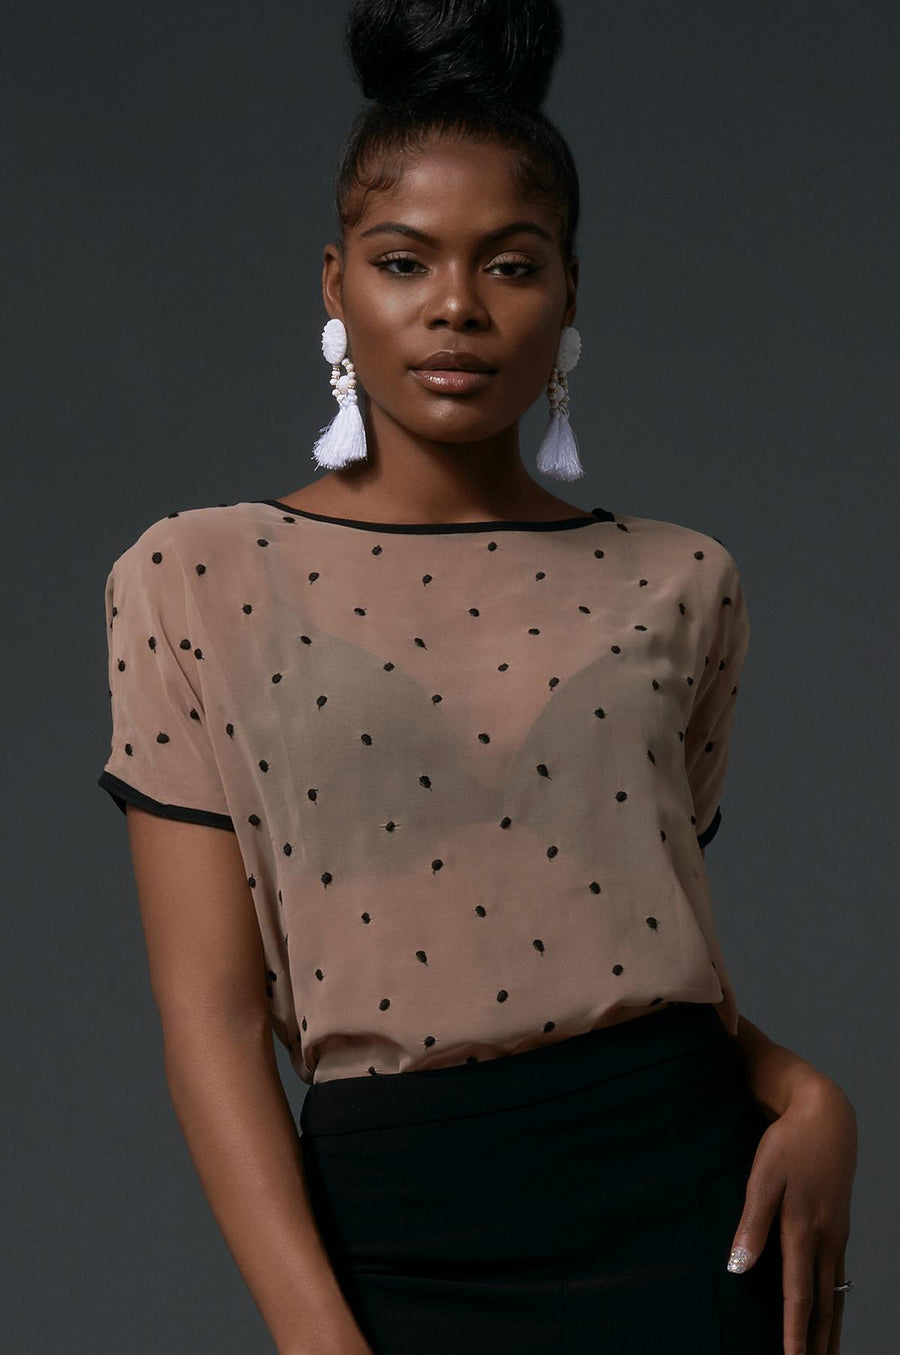 'Elisa' Sheer Polka Dot Top